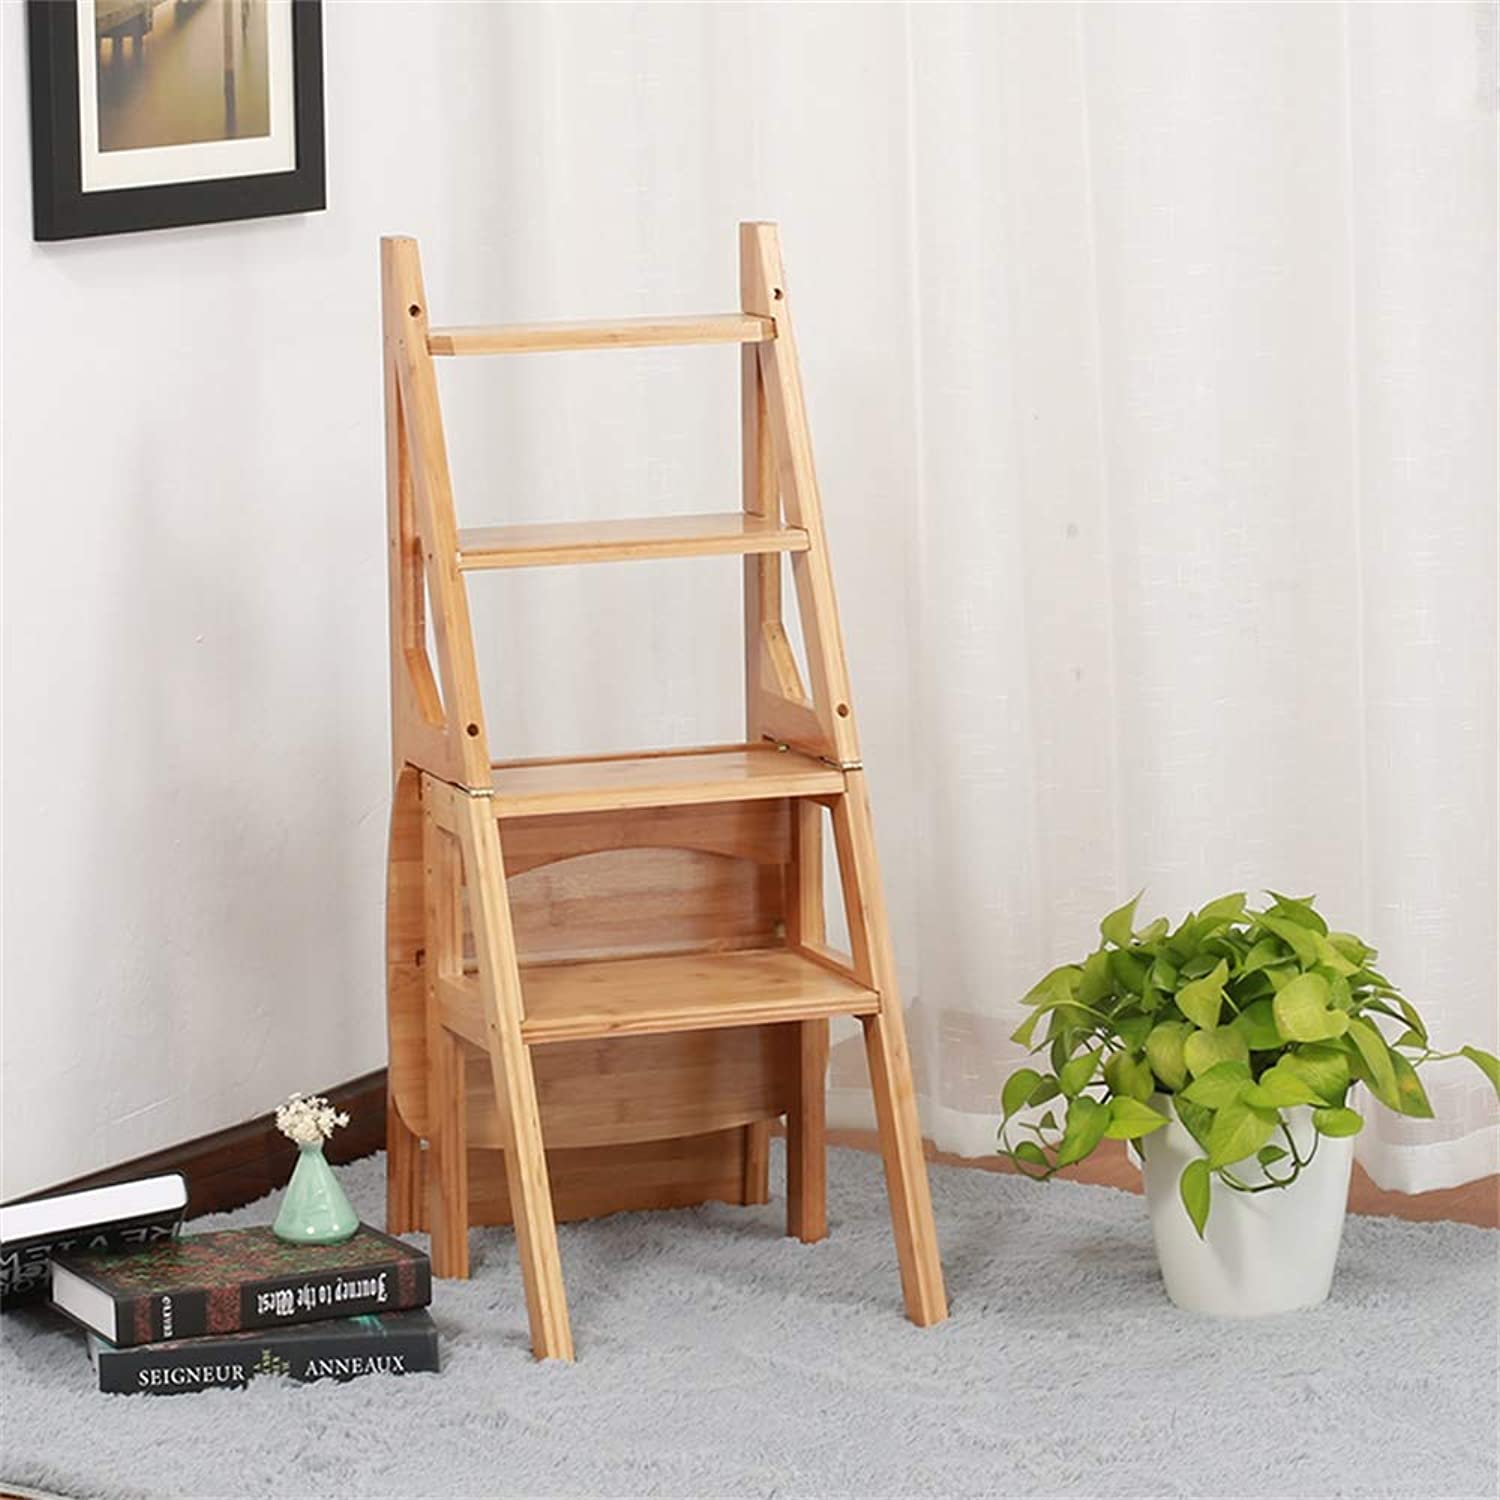 Geyao American Solid Wood Dualuse Staircase Chair Herringbone Ladder Folding Chair Home Multifunction Step Stool Fourlayer Climbing Ladder 40×37×89cm (color   B)